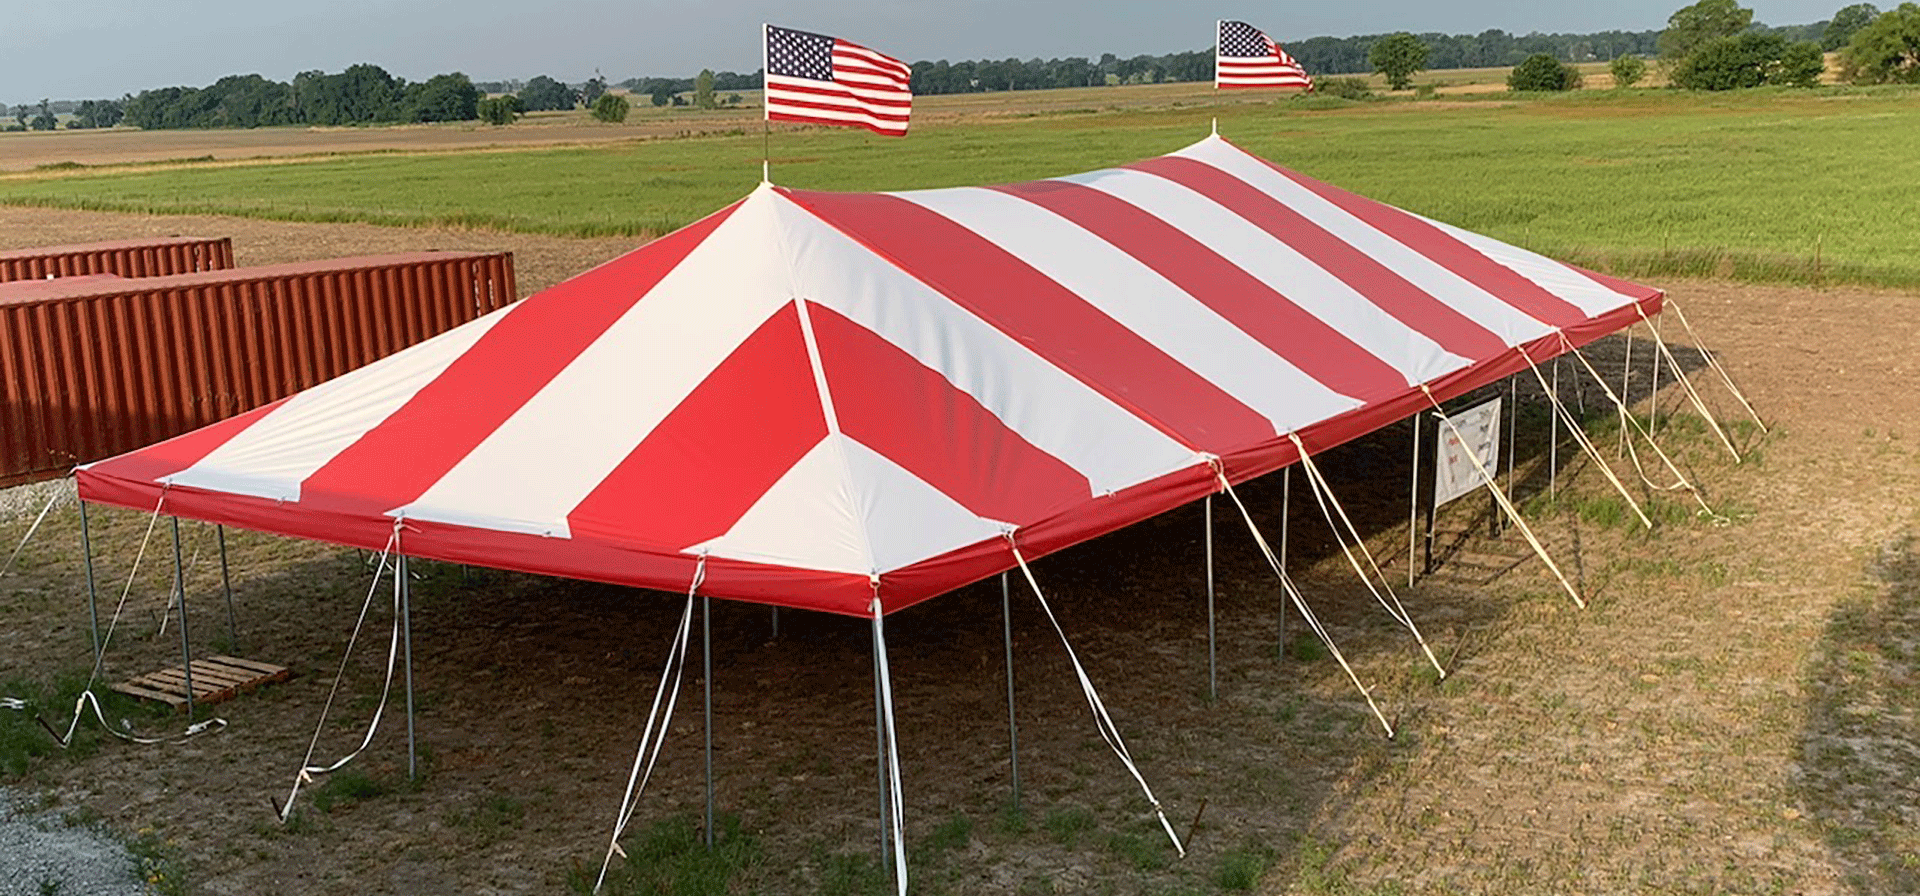 Tents-on-sale